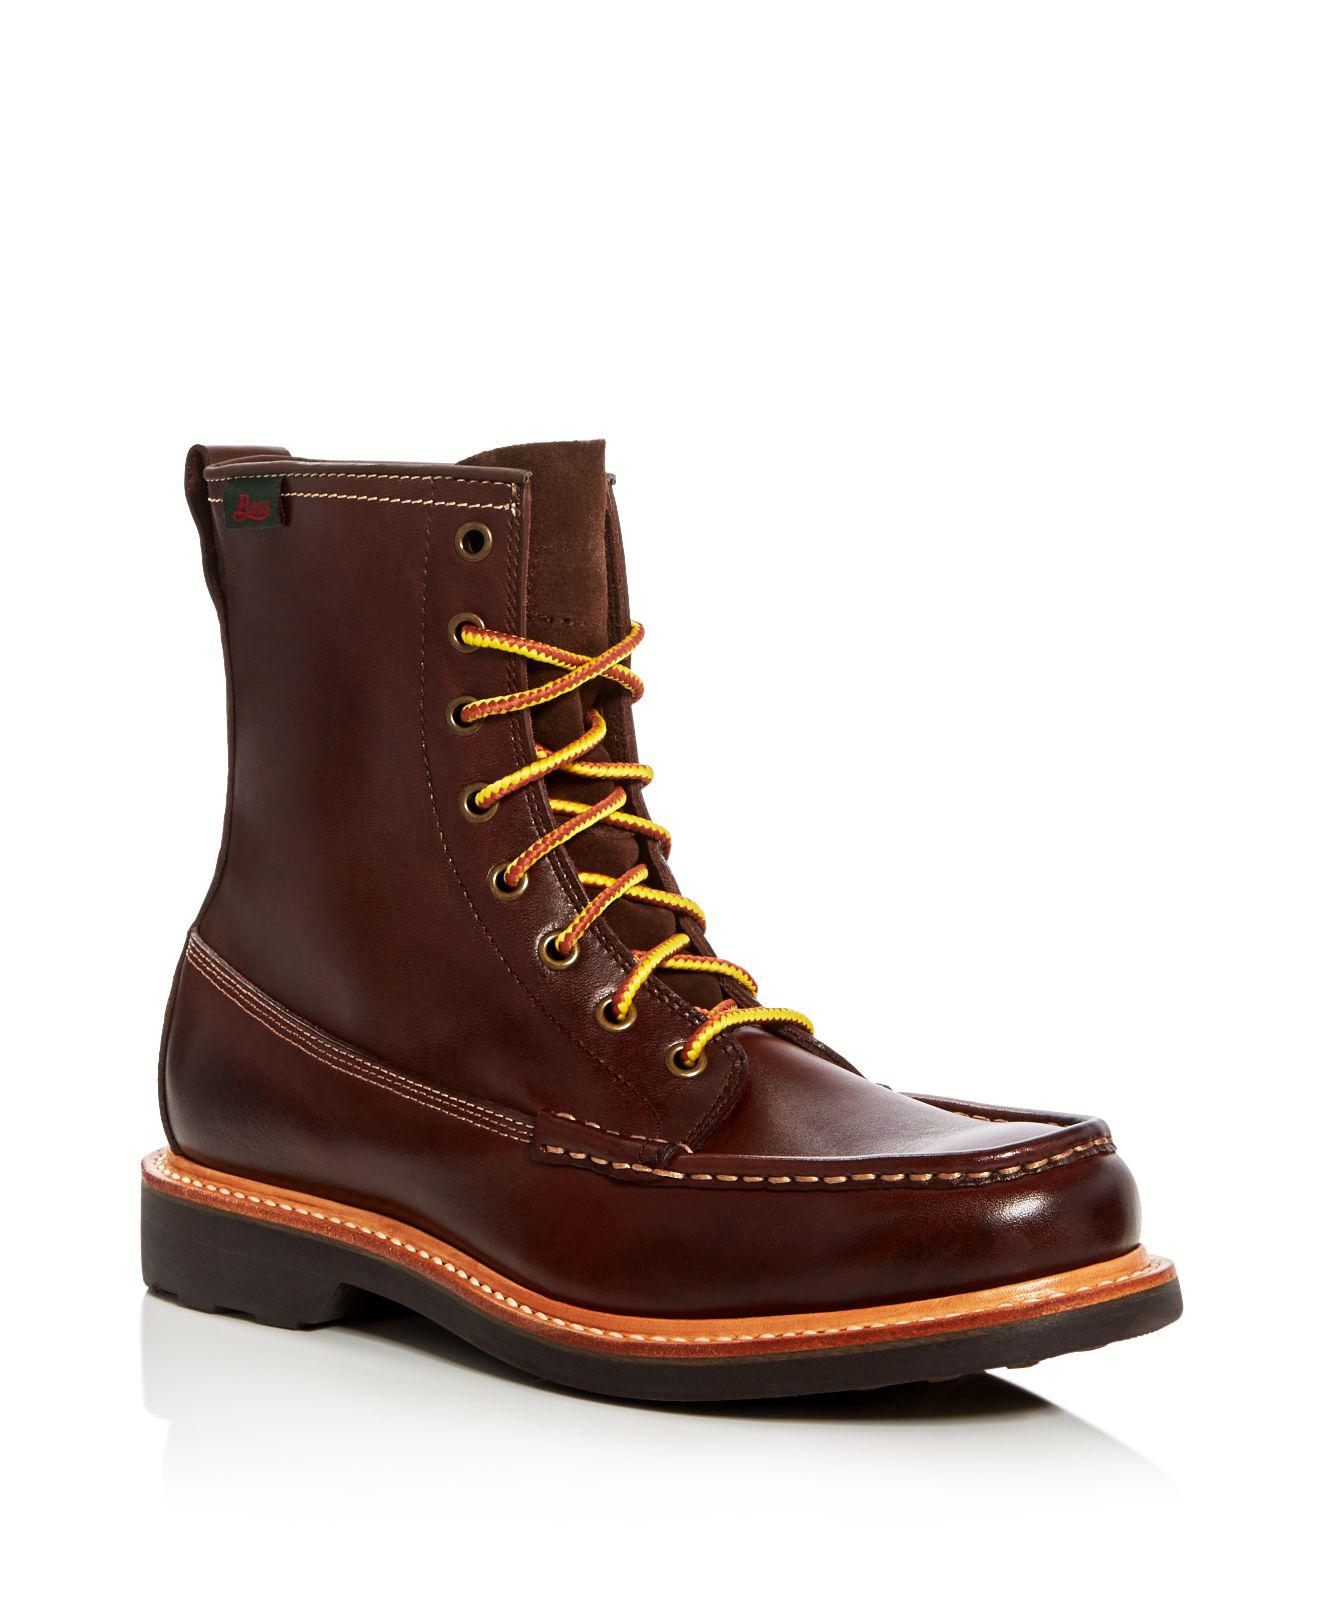 bf1324d6476 G.H. Bass & Co. - Brown Anthony Boots for Men - Lyst